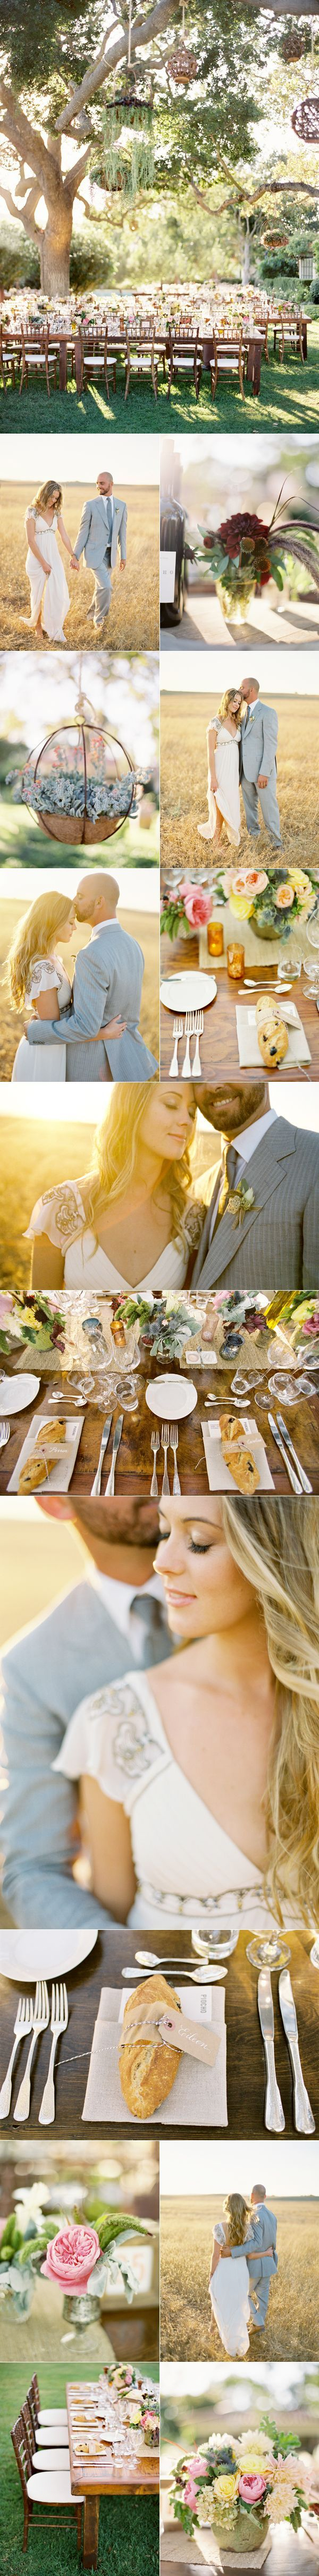 Santa Ynez Vineyard Wedding III